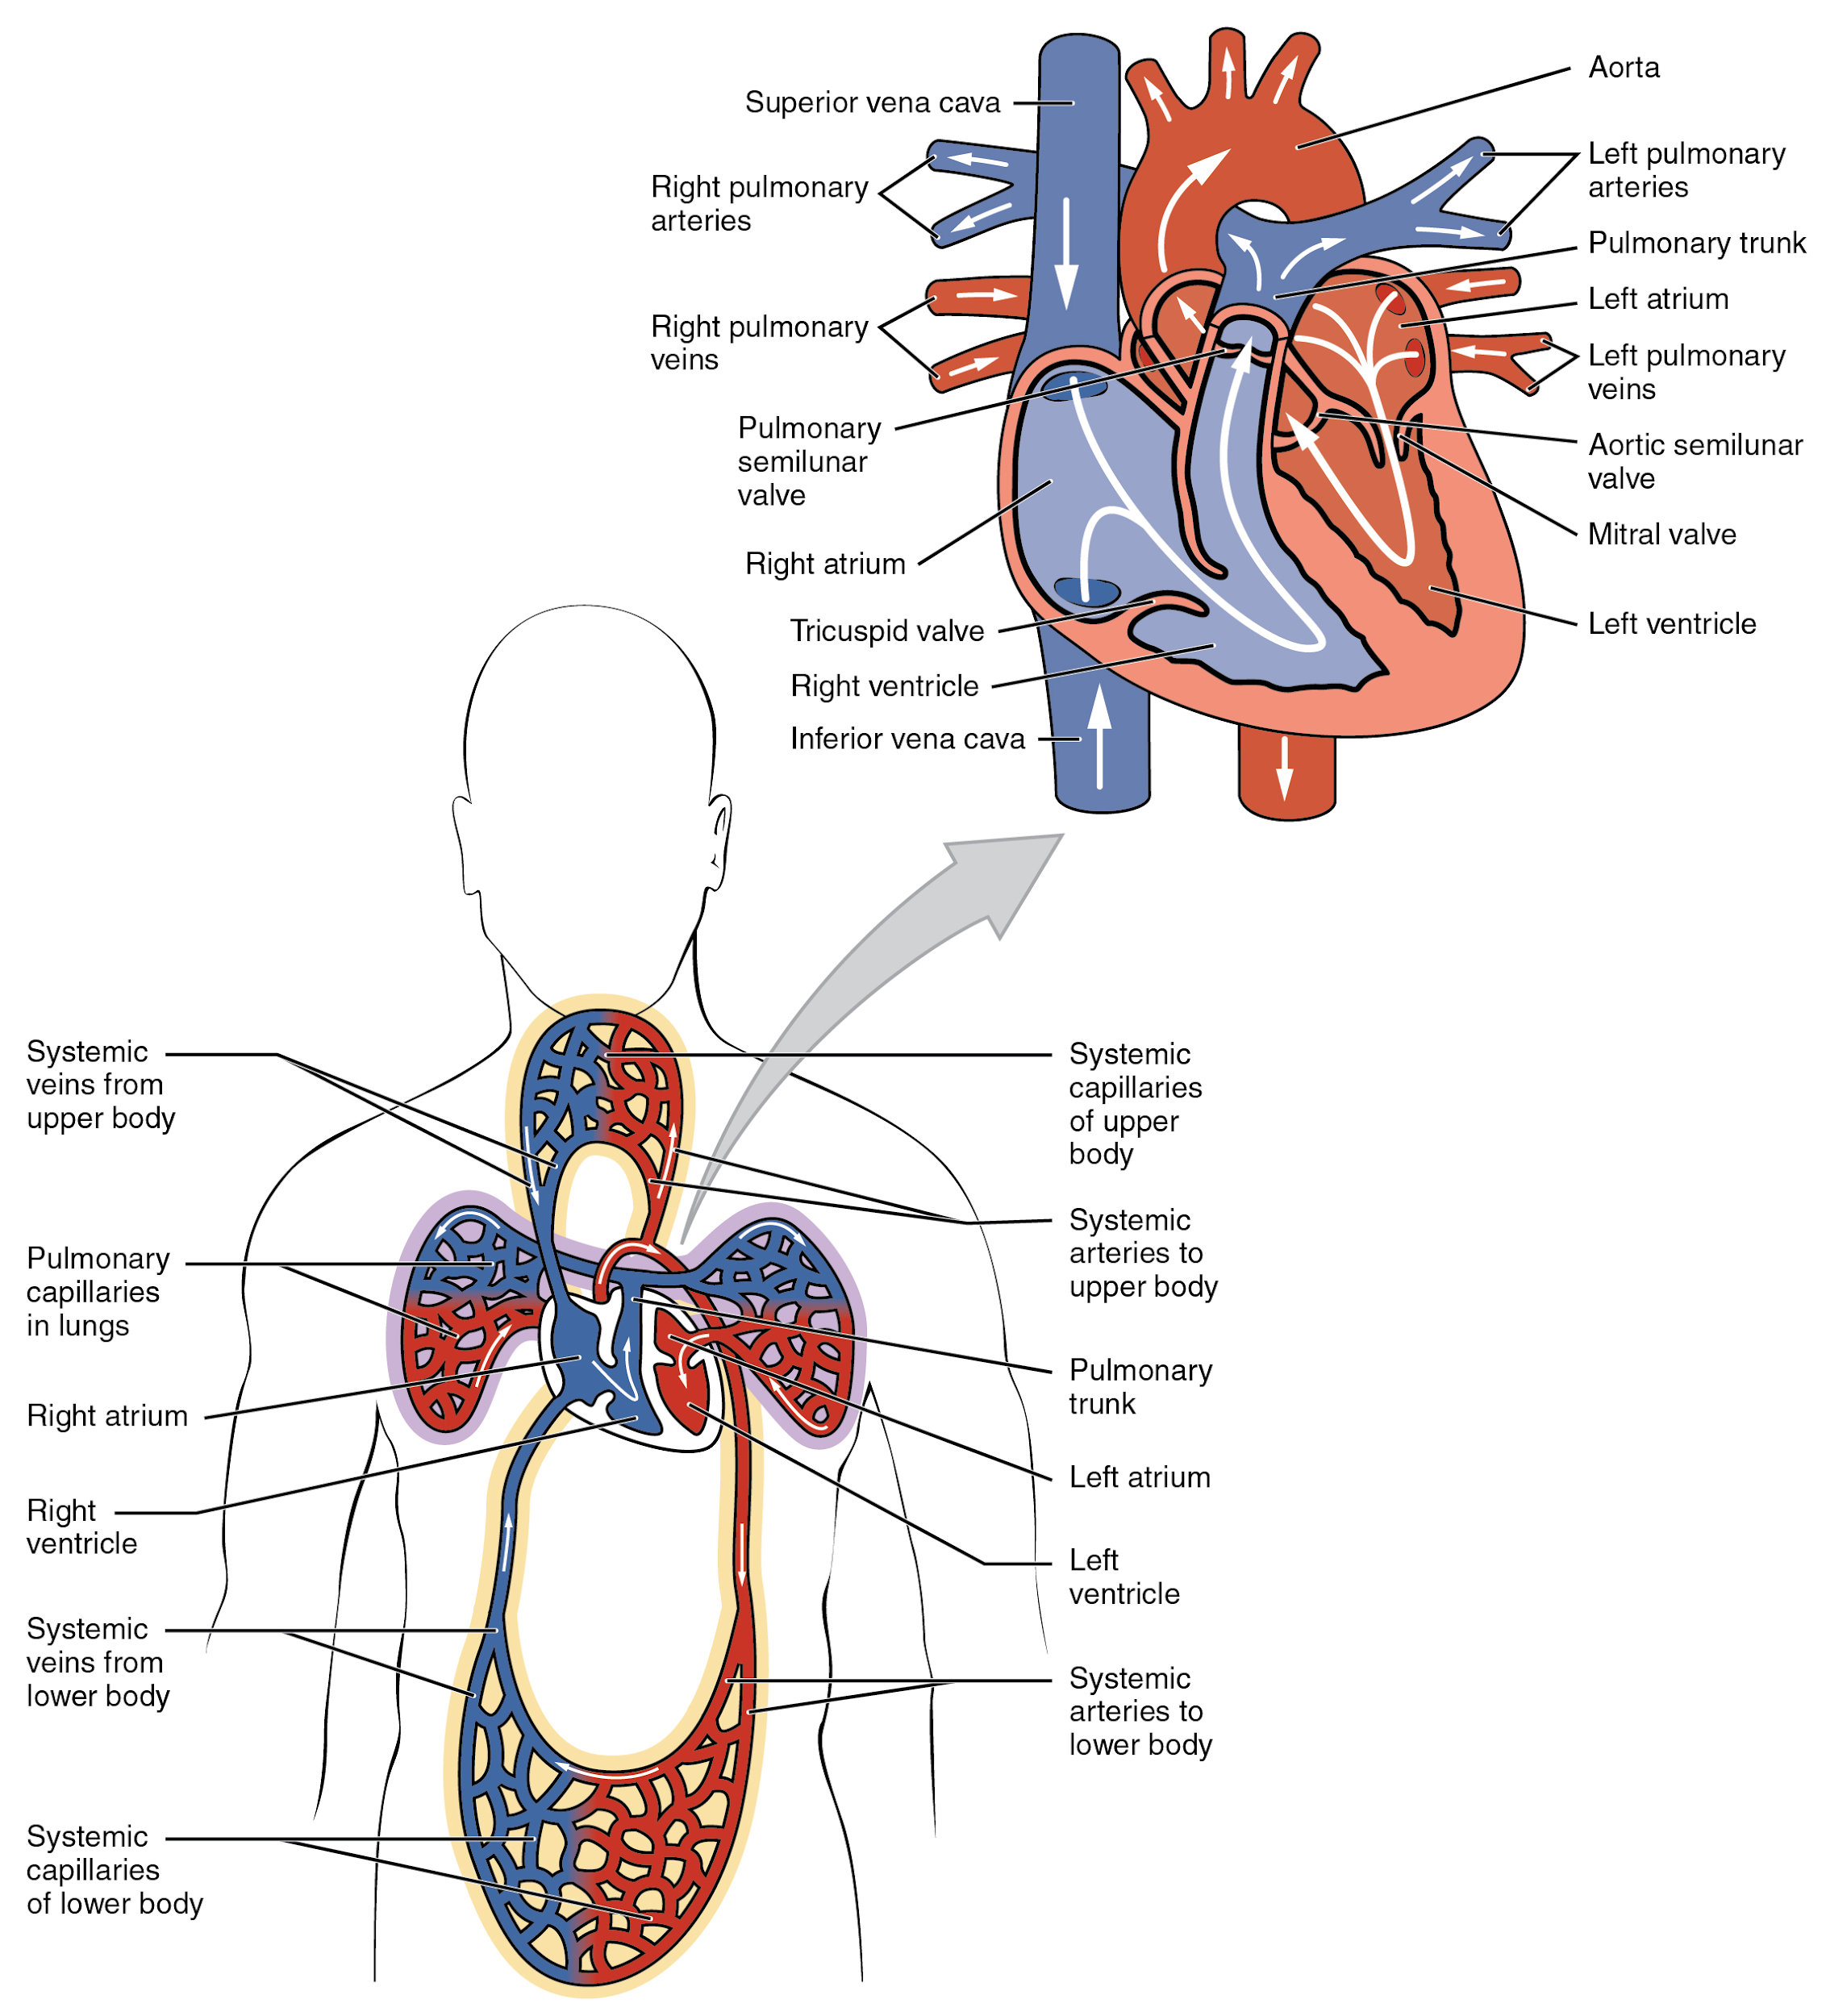 Illustration, with labels showing chambers of heart and blood circulation.